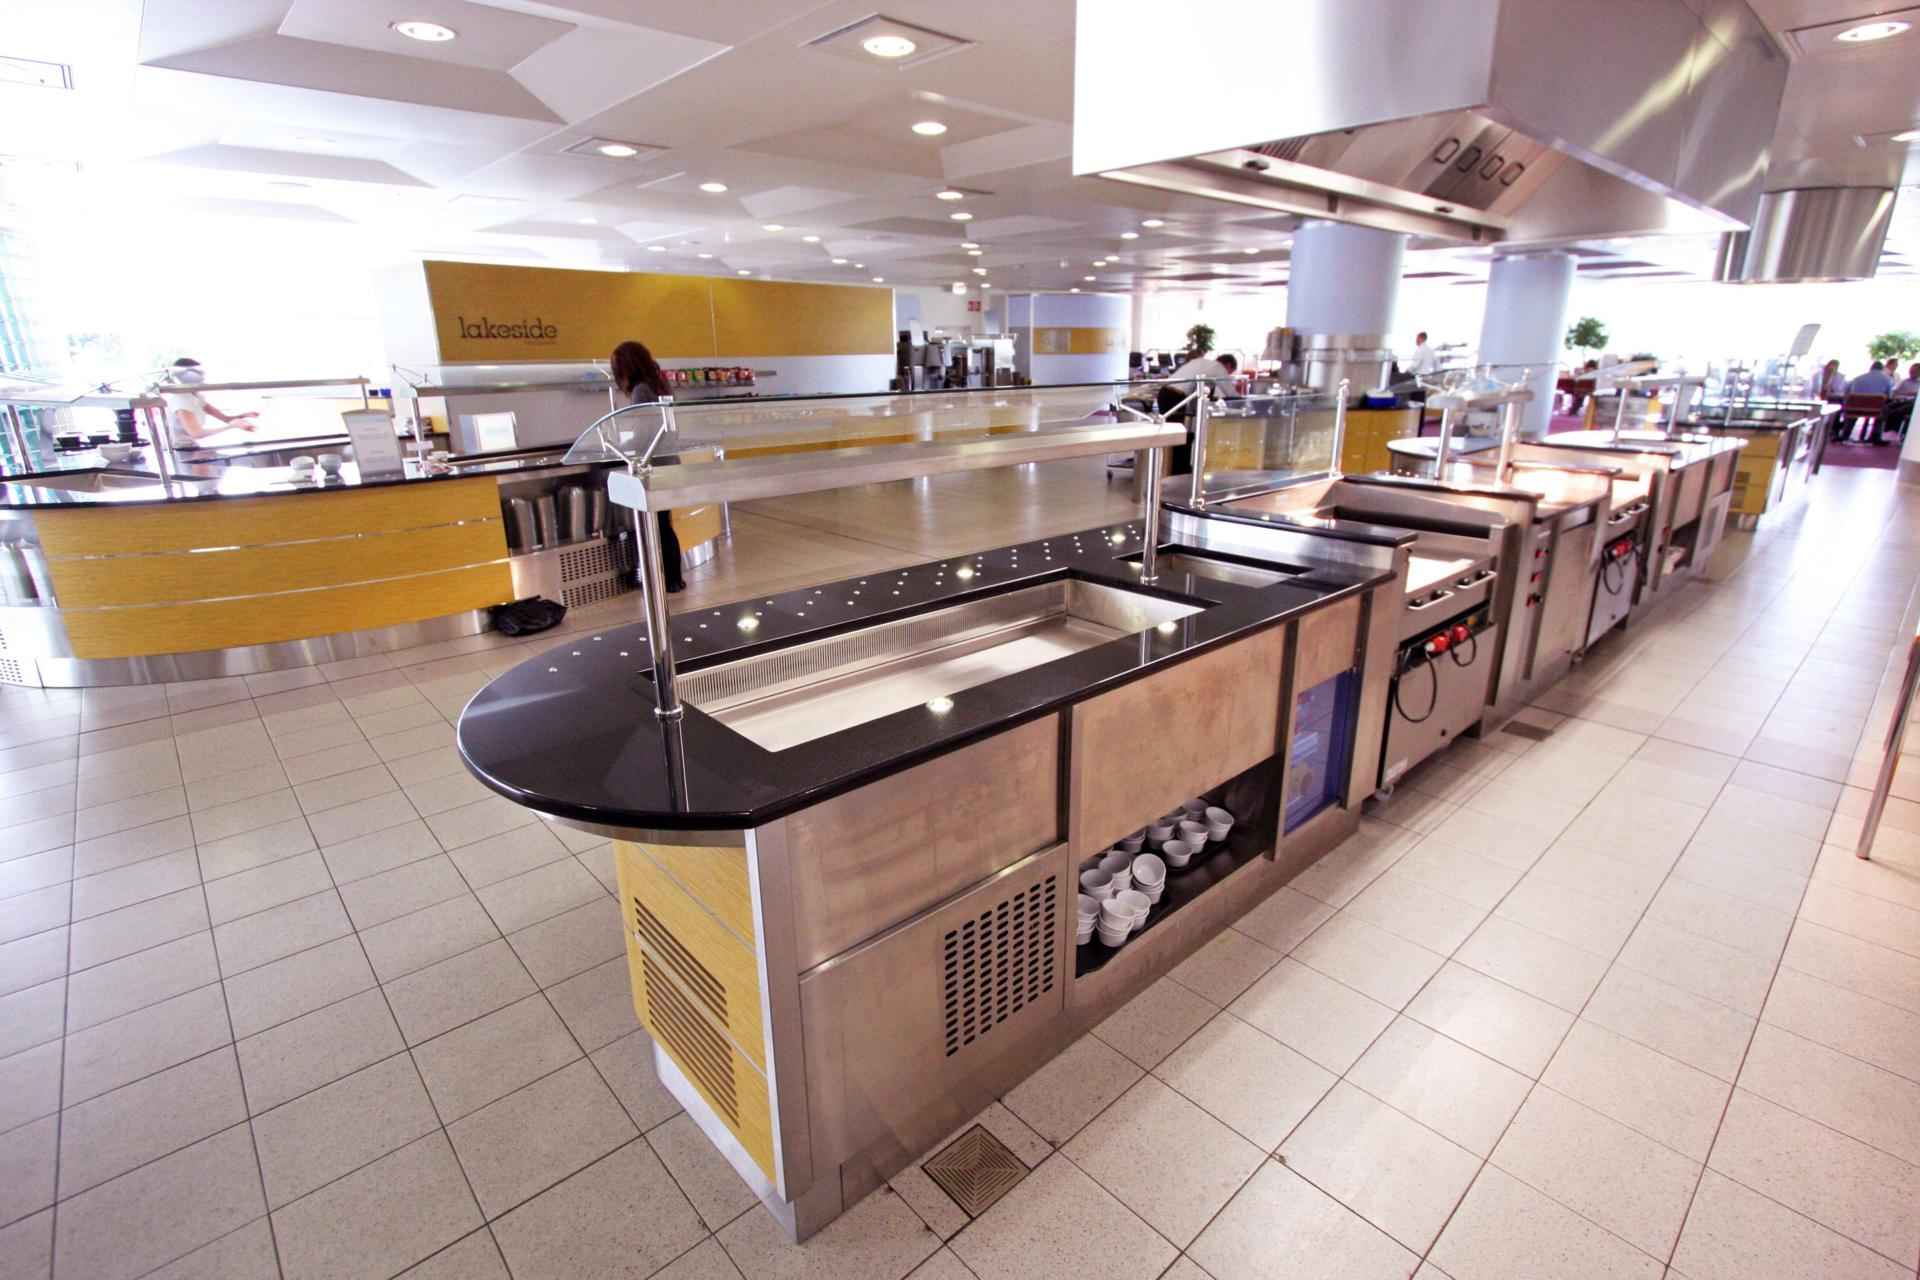 nationwide_swindon_staff restaurant_servery (13)